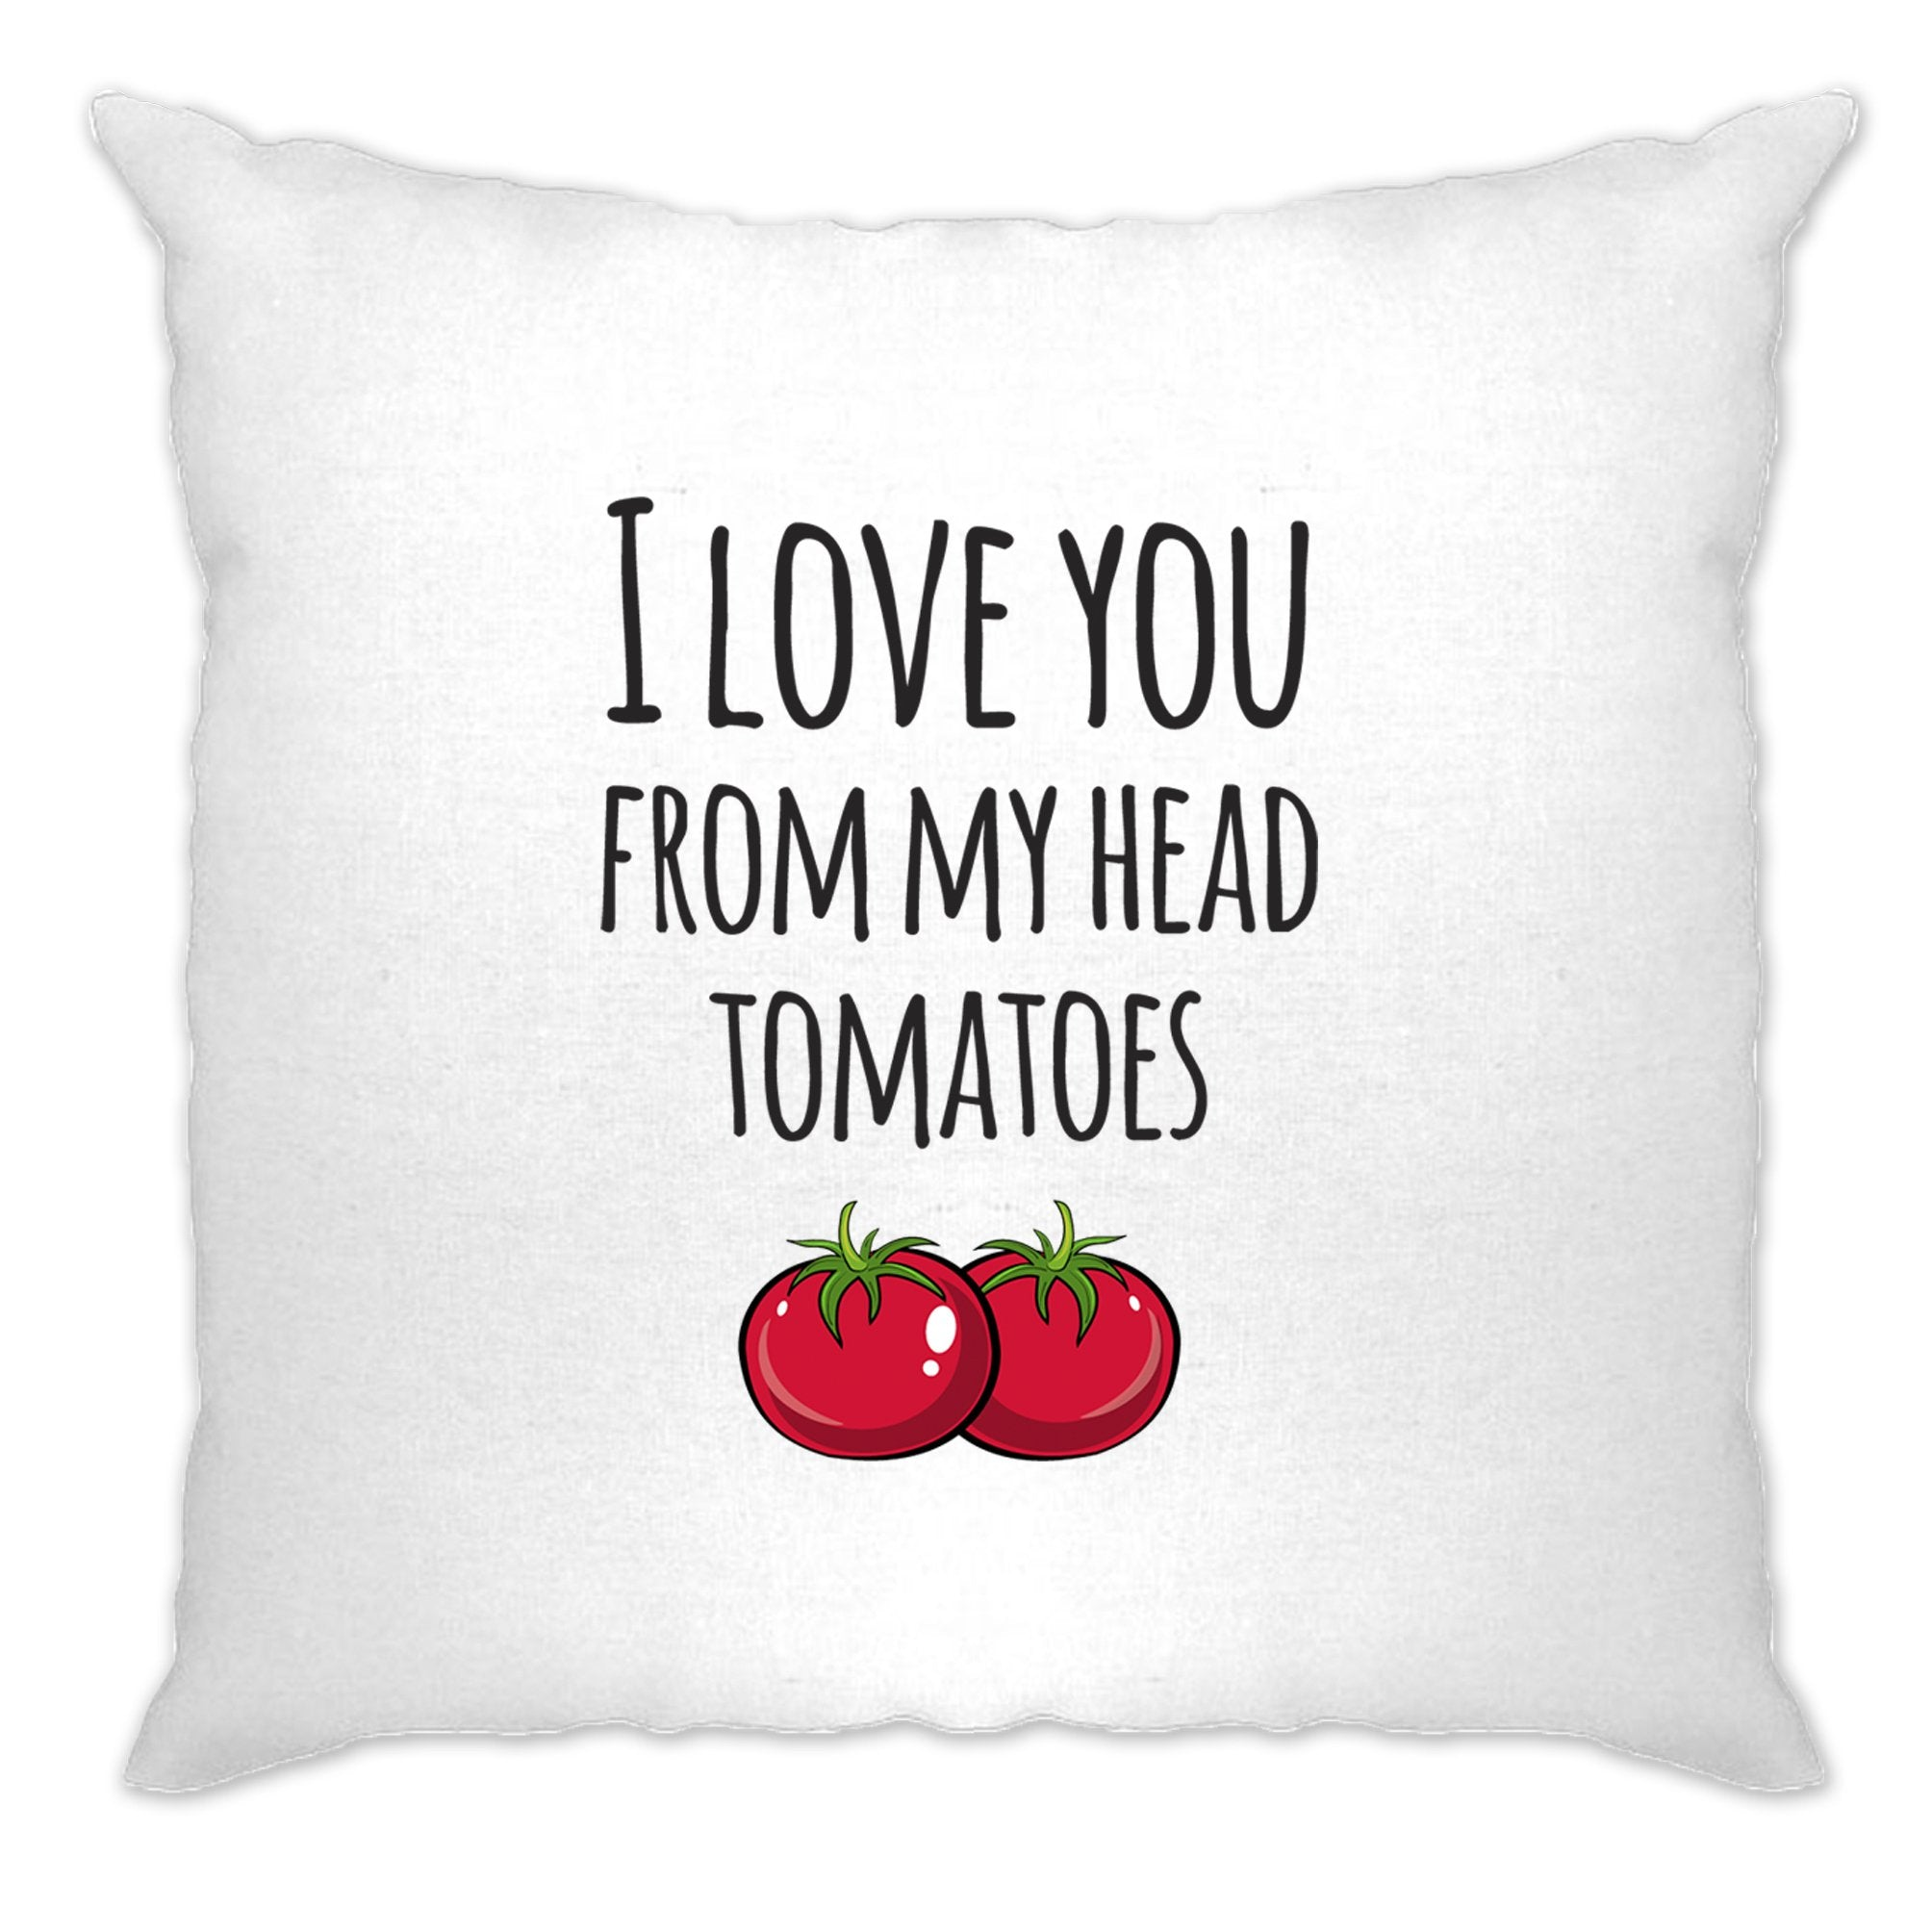 Valentines Pun Cushion Cover Love You From My Head Tomatoes